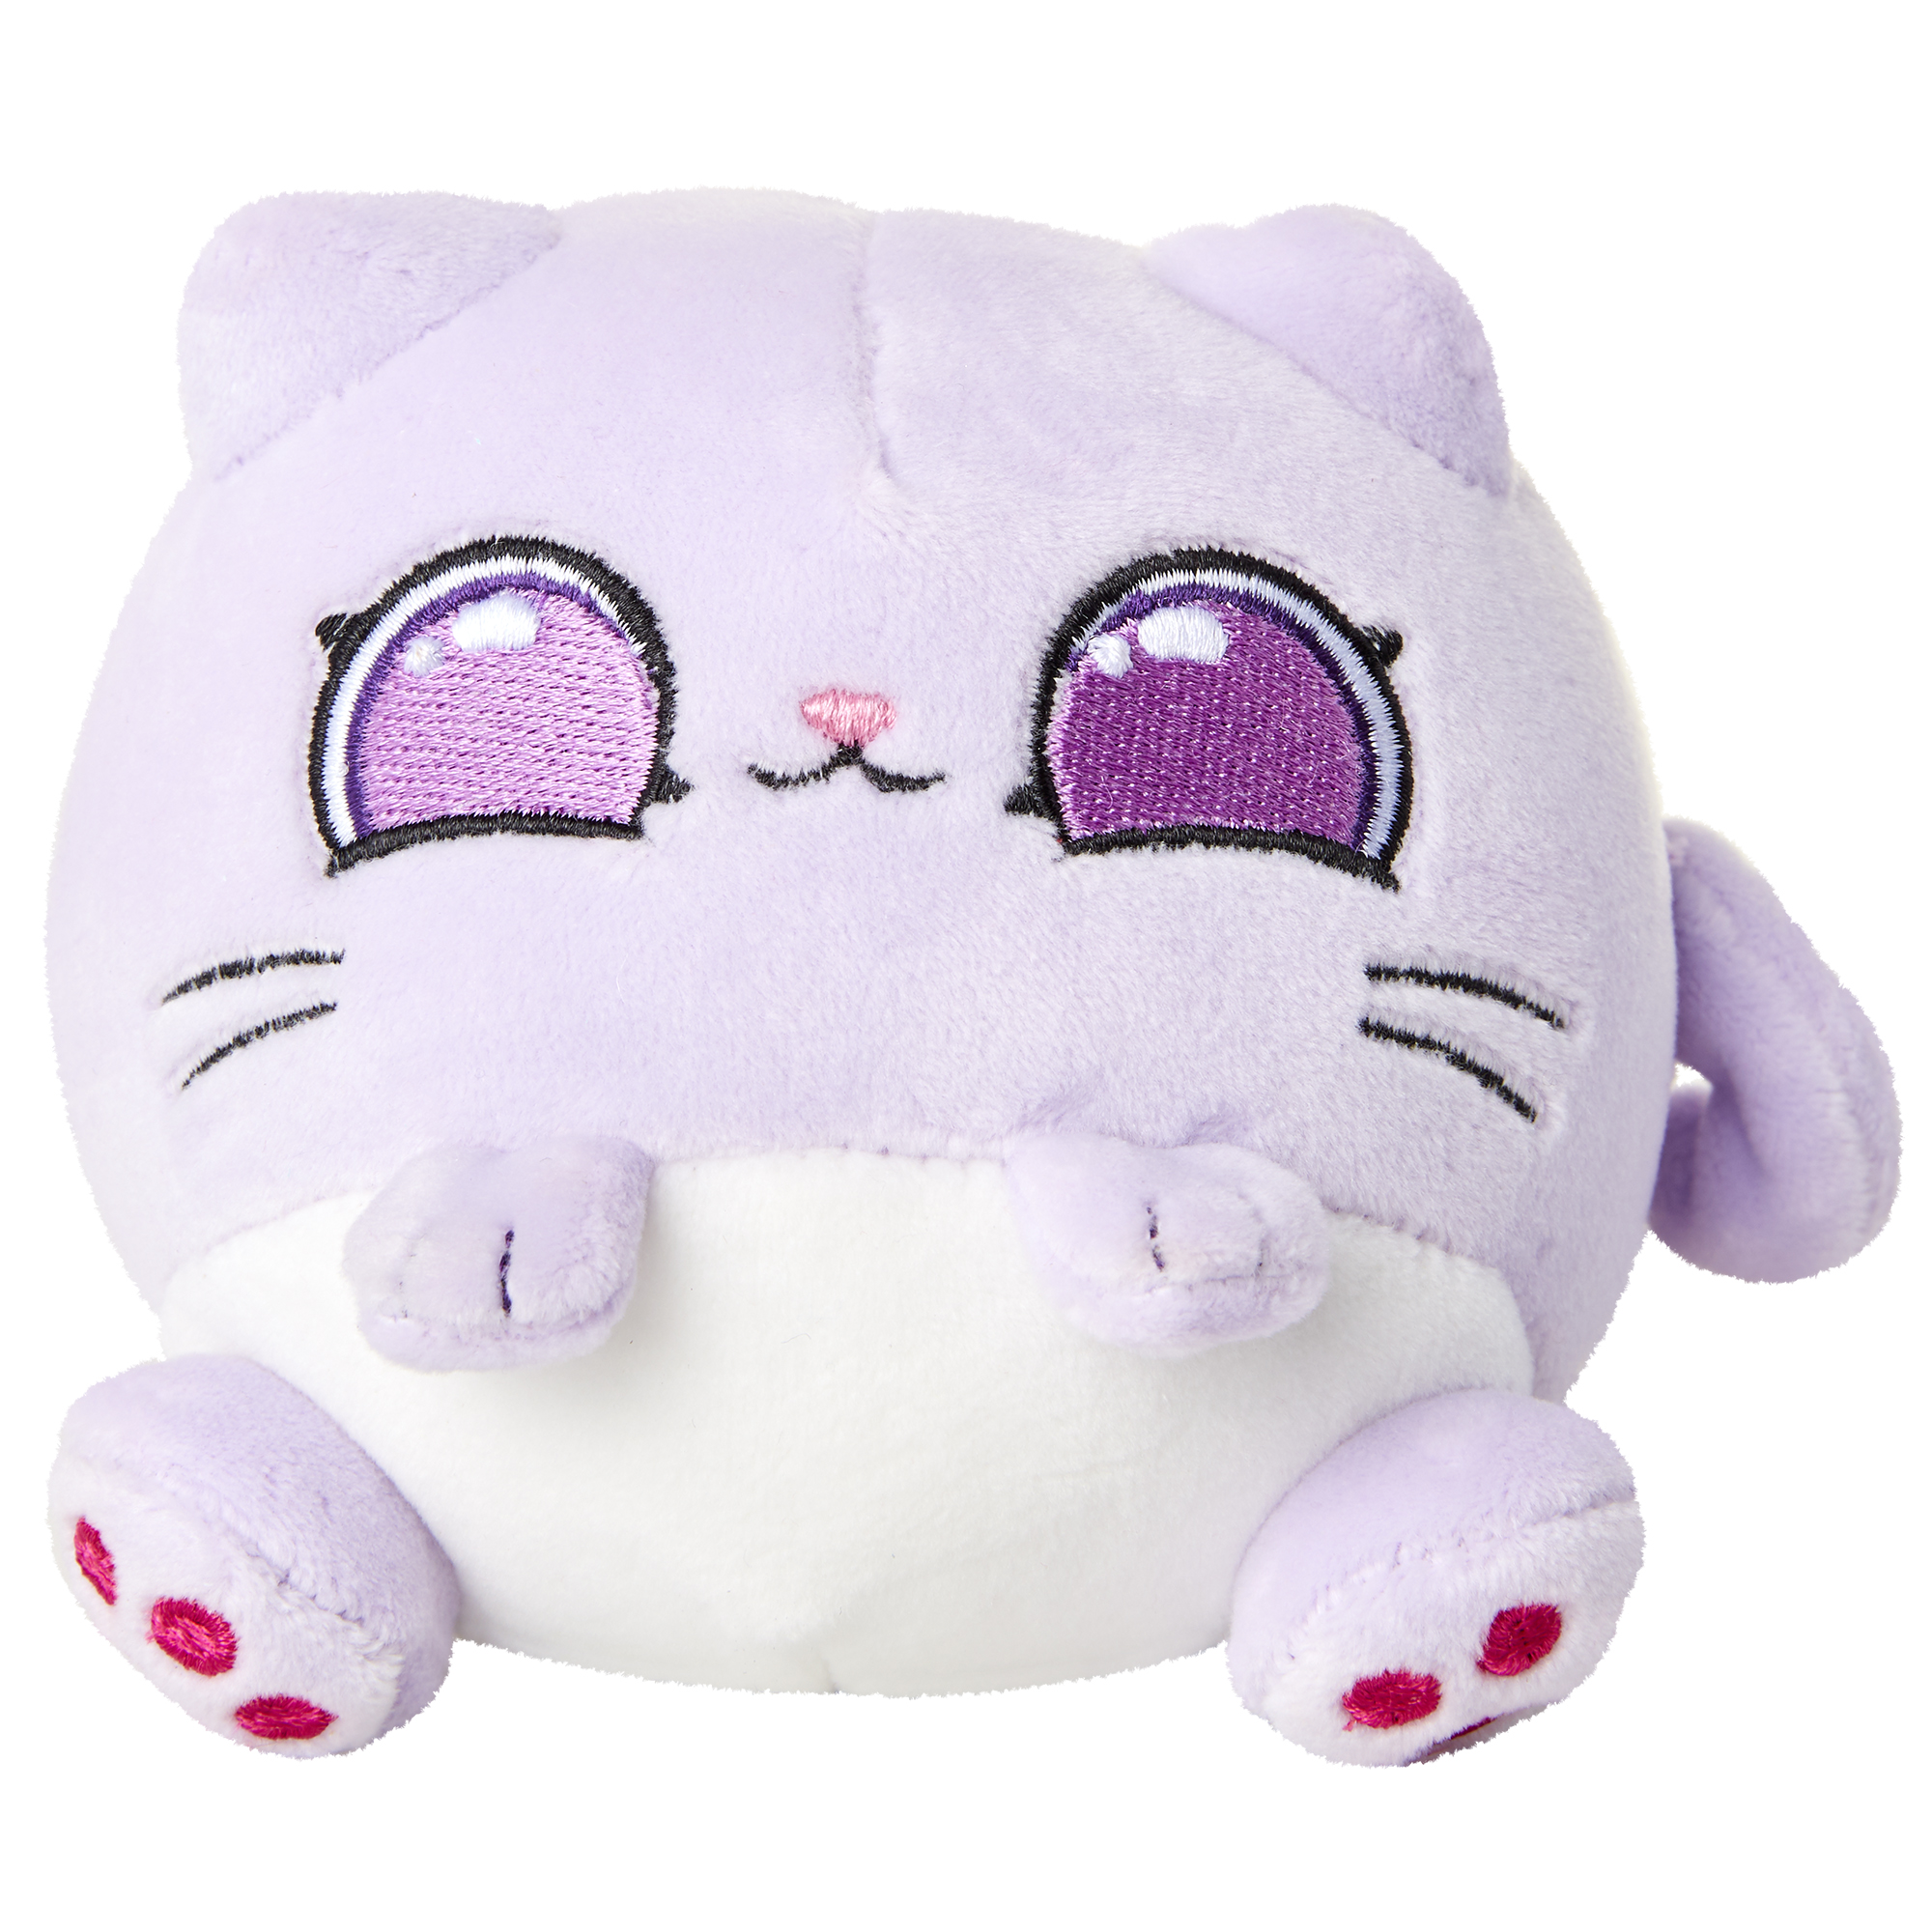 Meowble Scented Plush